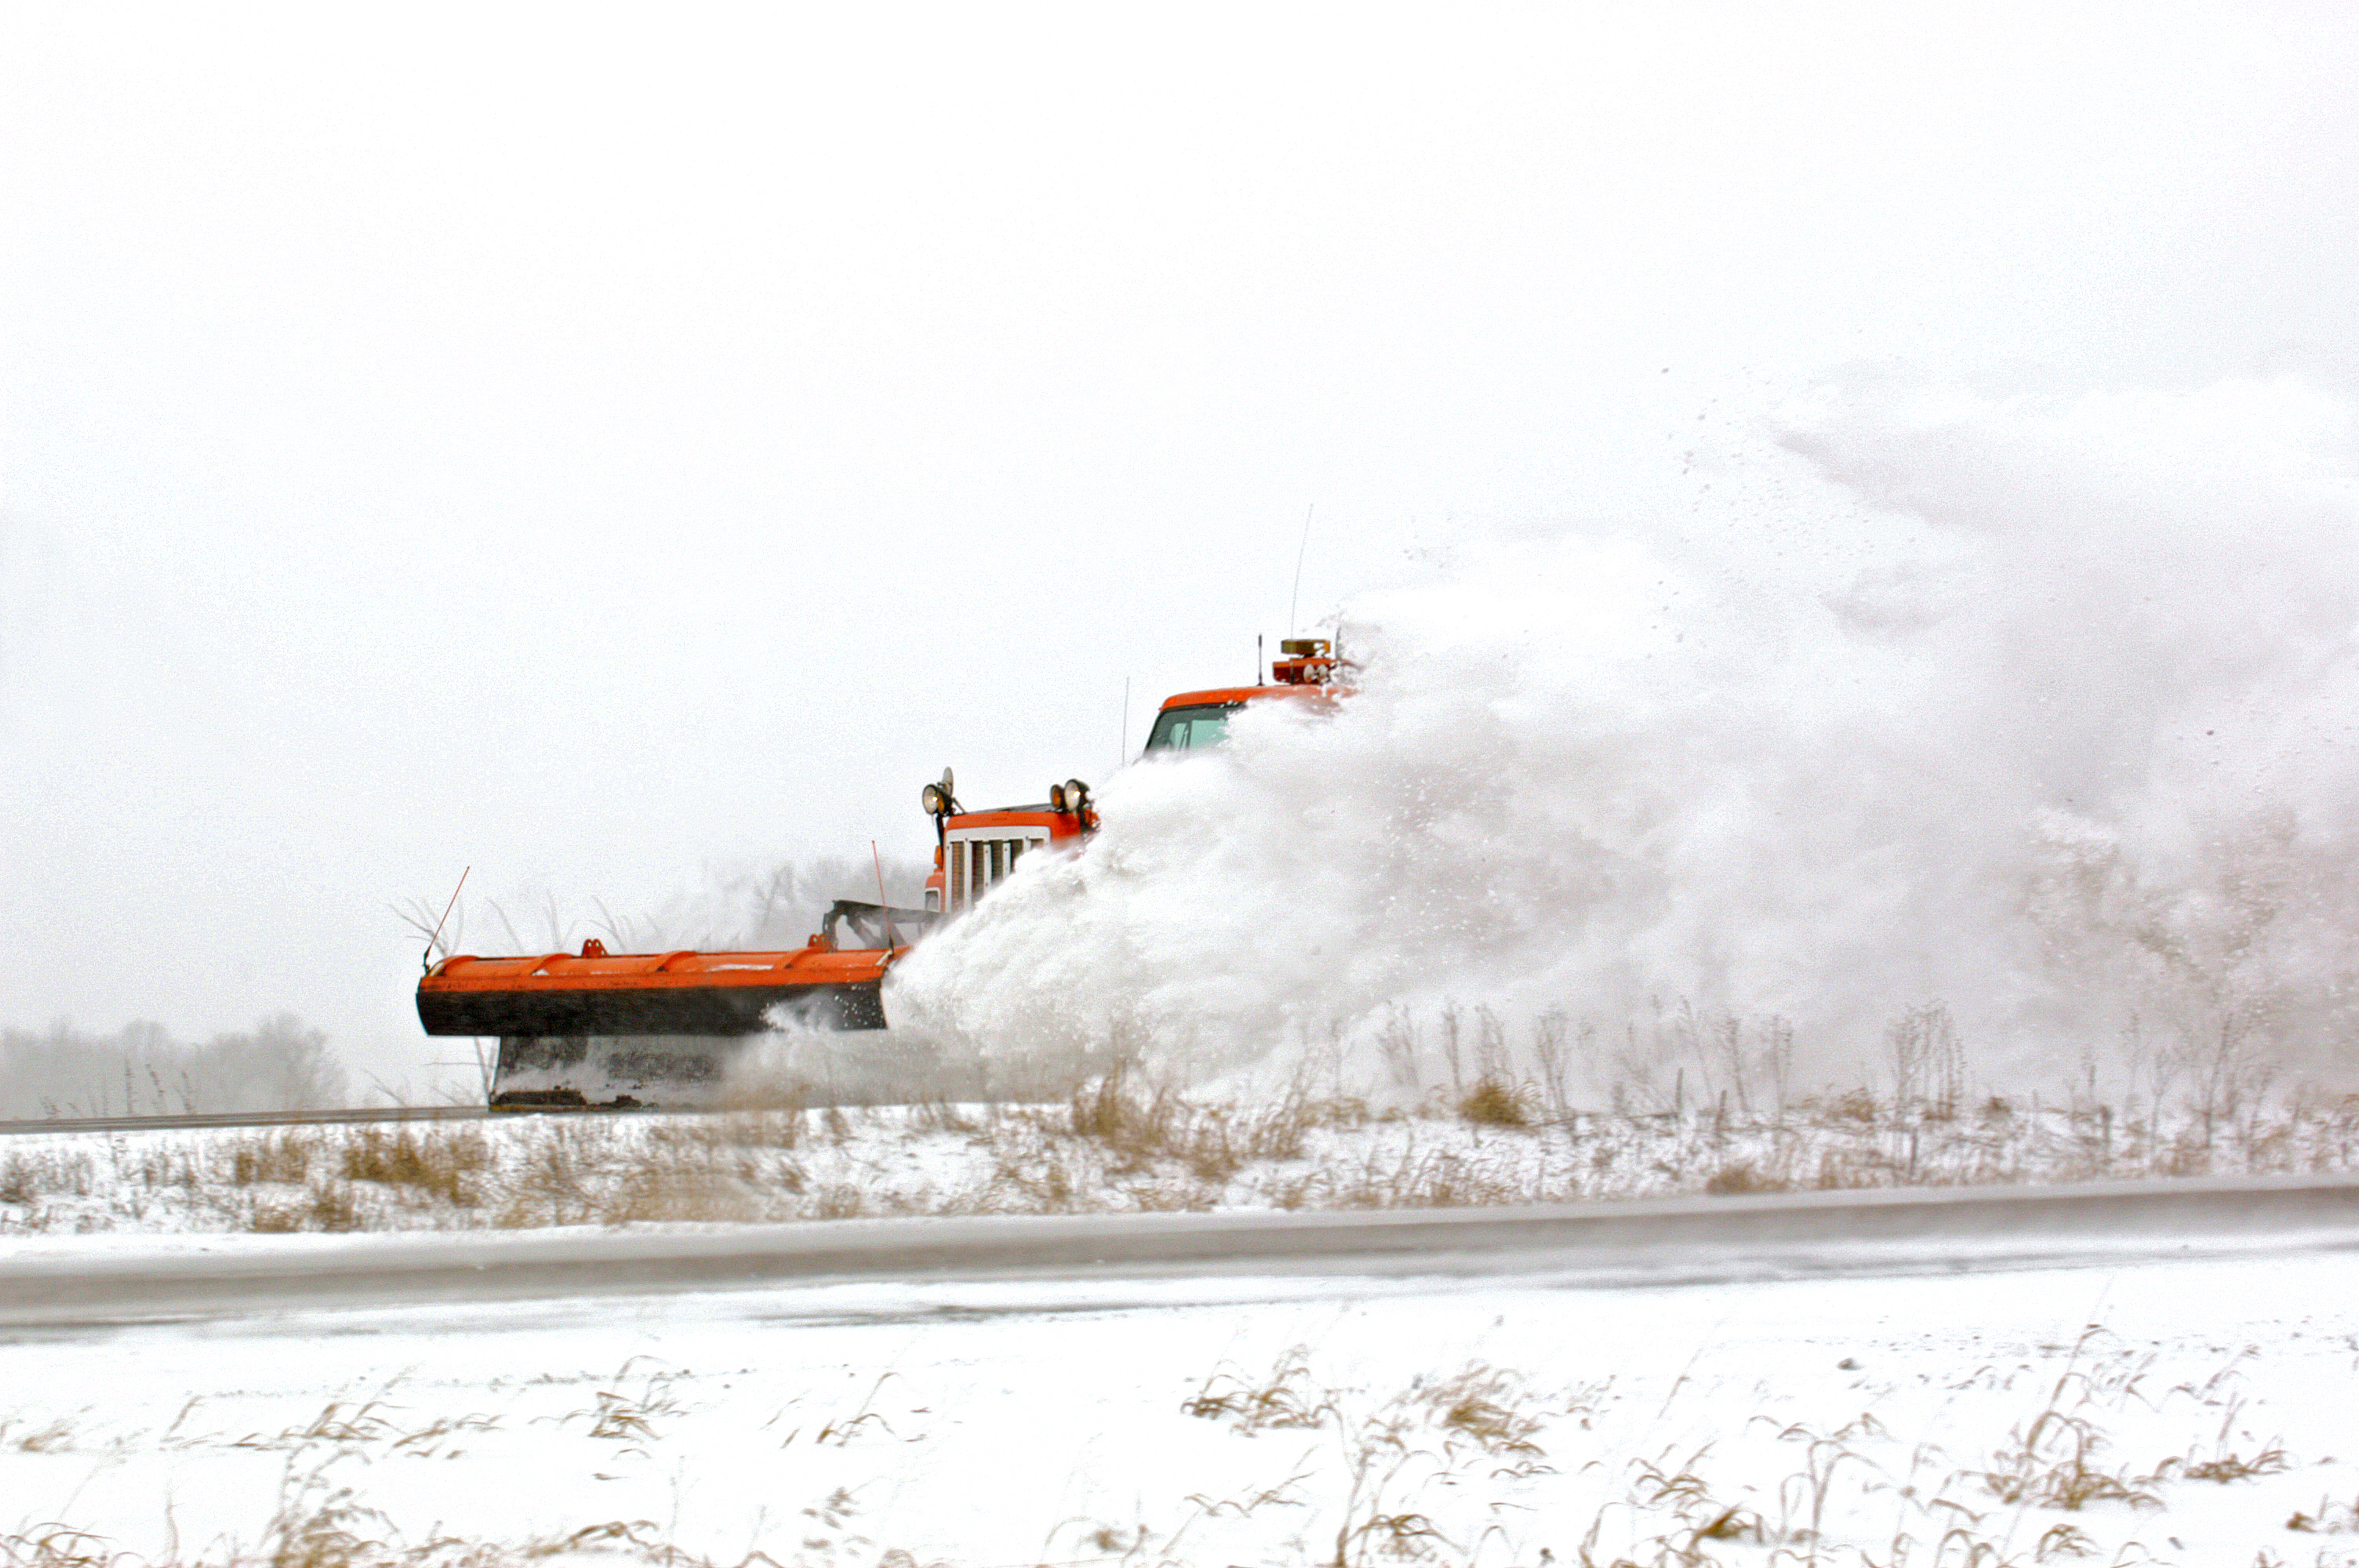 Snowplow on a snowy highway